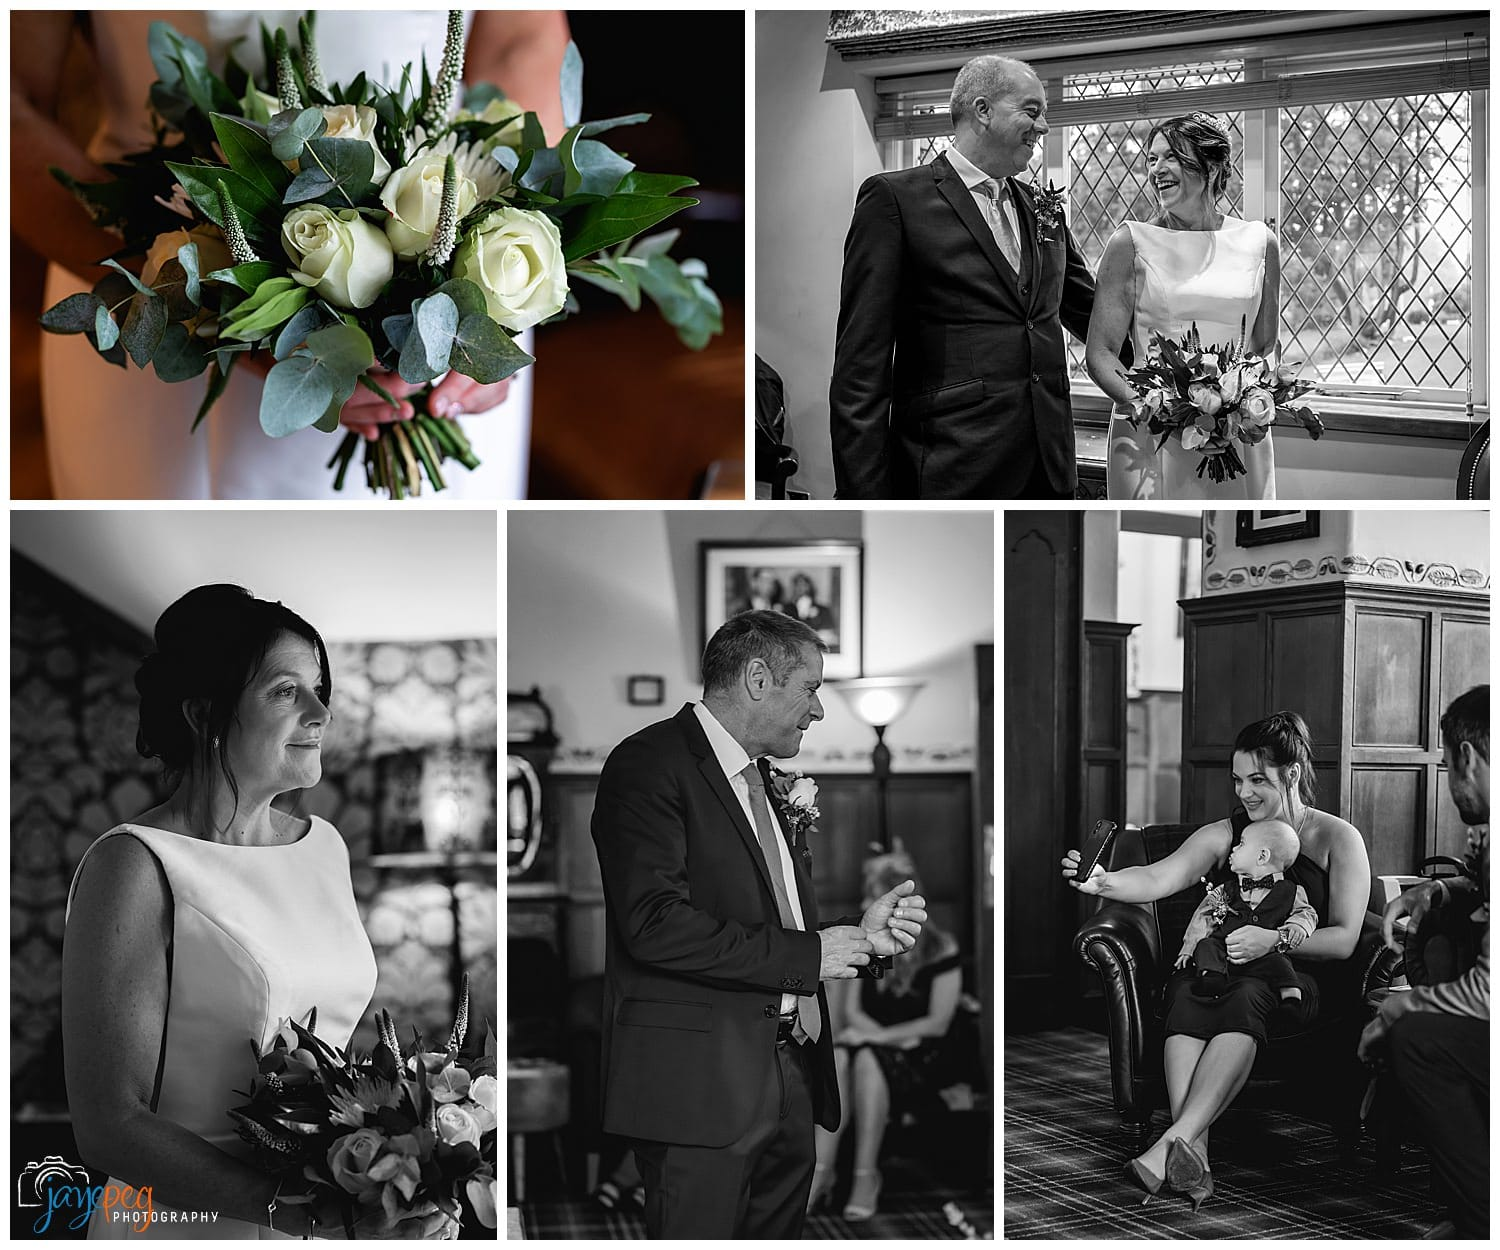 photos of a bride and groom before their wedding in the music room at broadoaks country house hotel